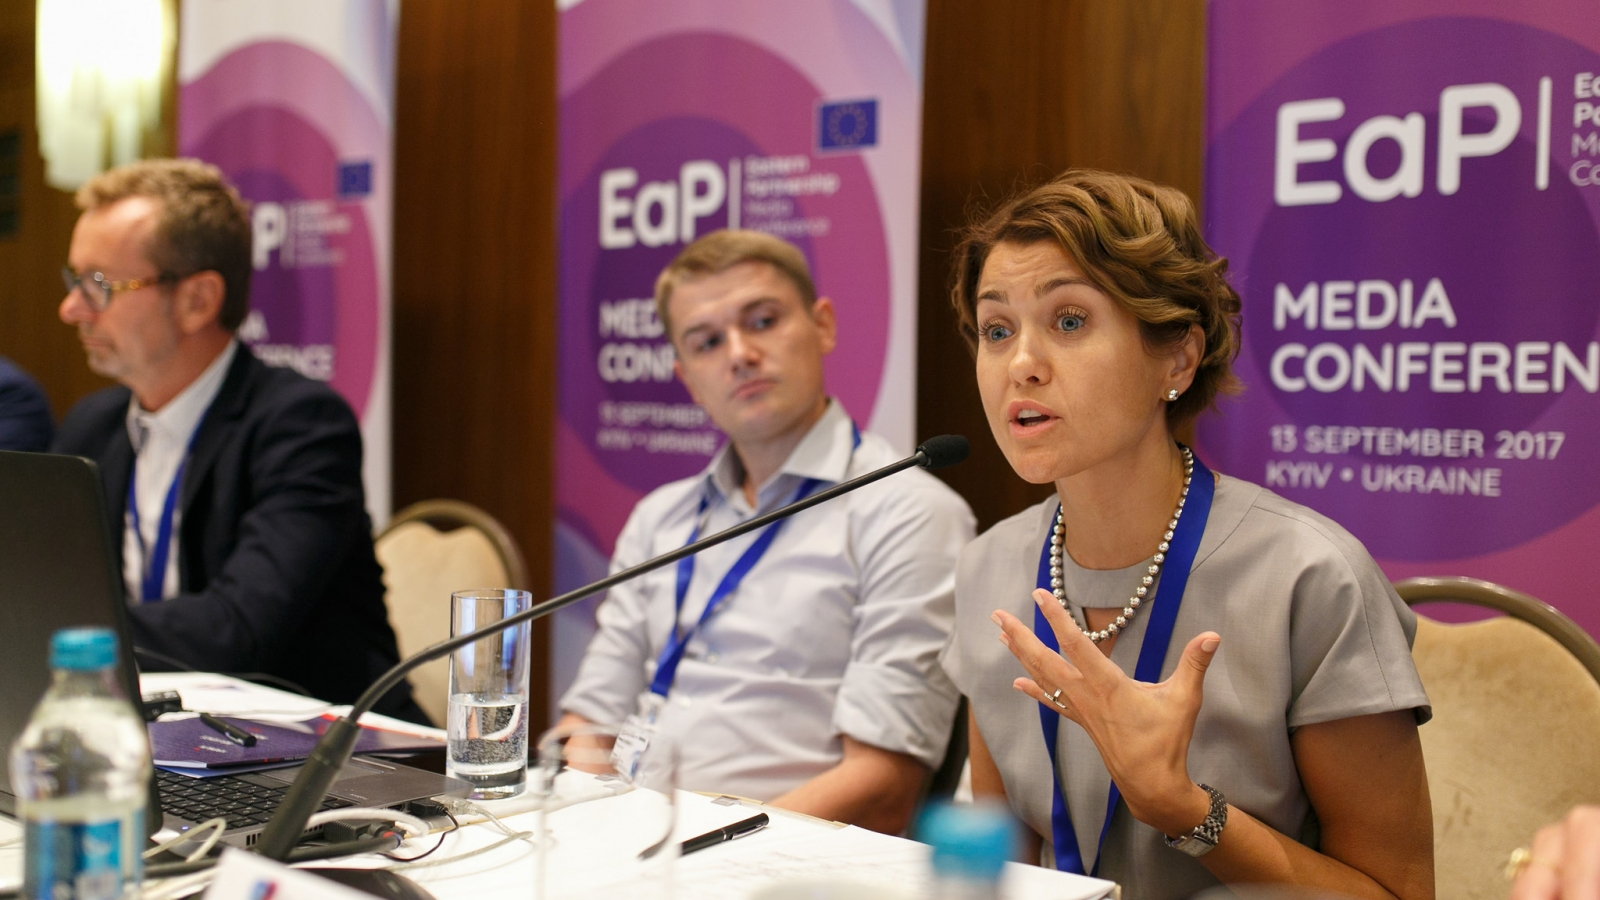 Challenges for independent media in EaP countries were discussed at the conference in Kyiv on 12-13 September 2017